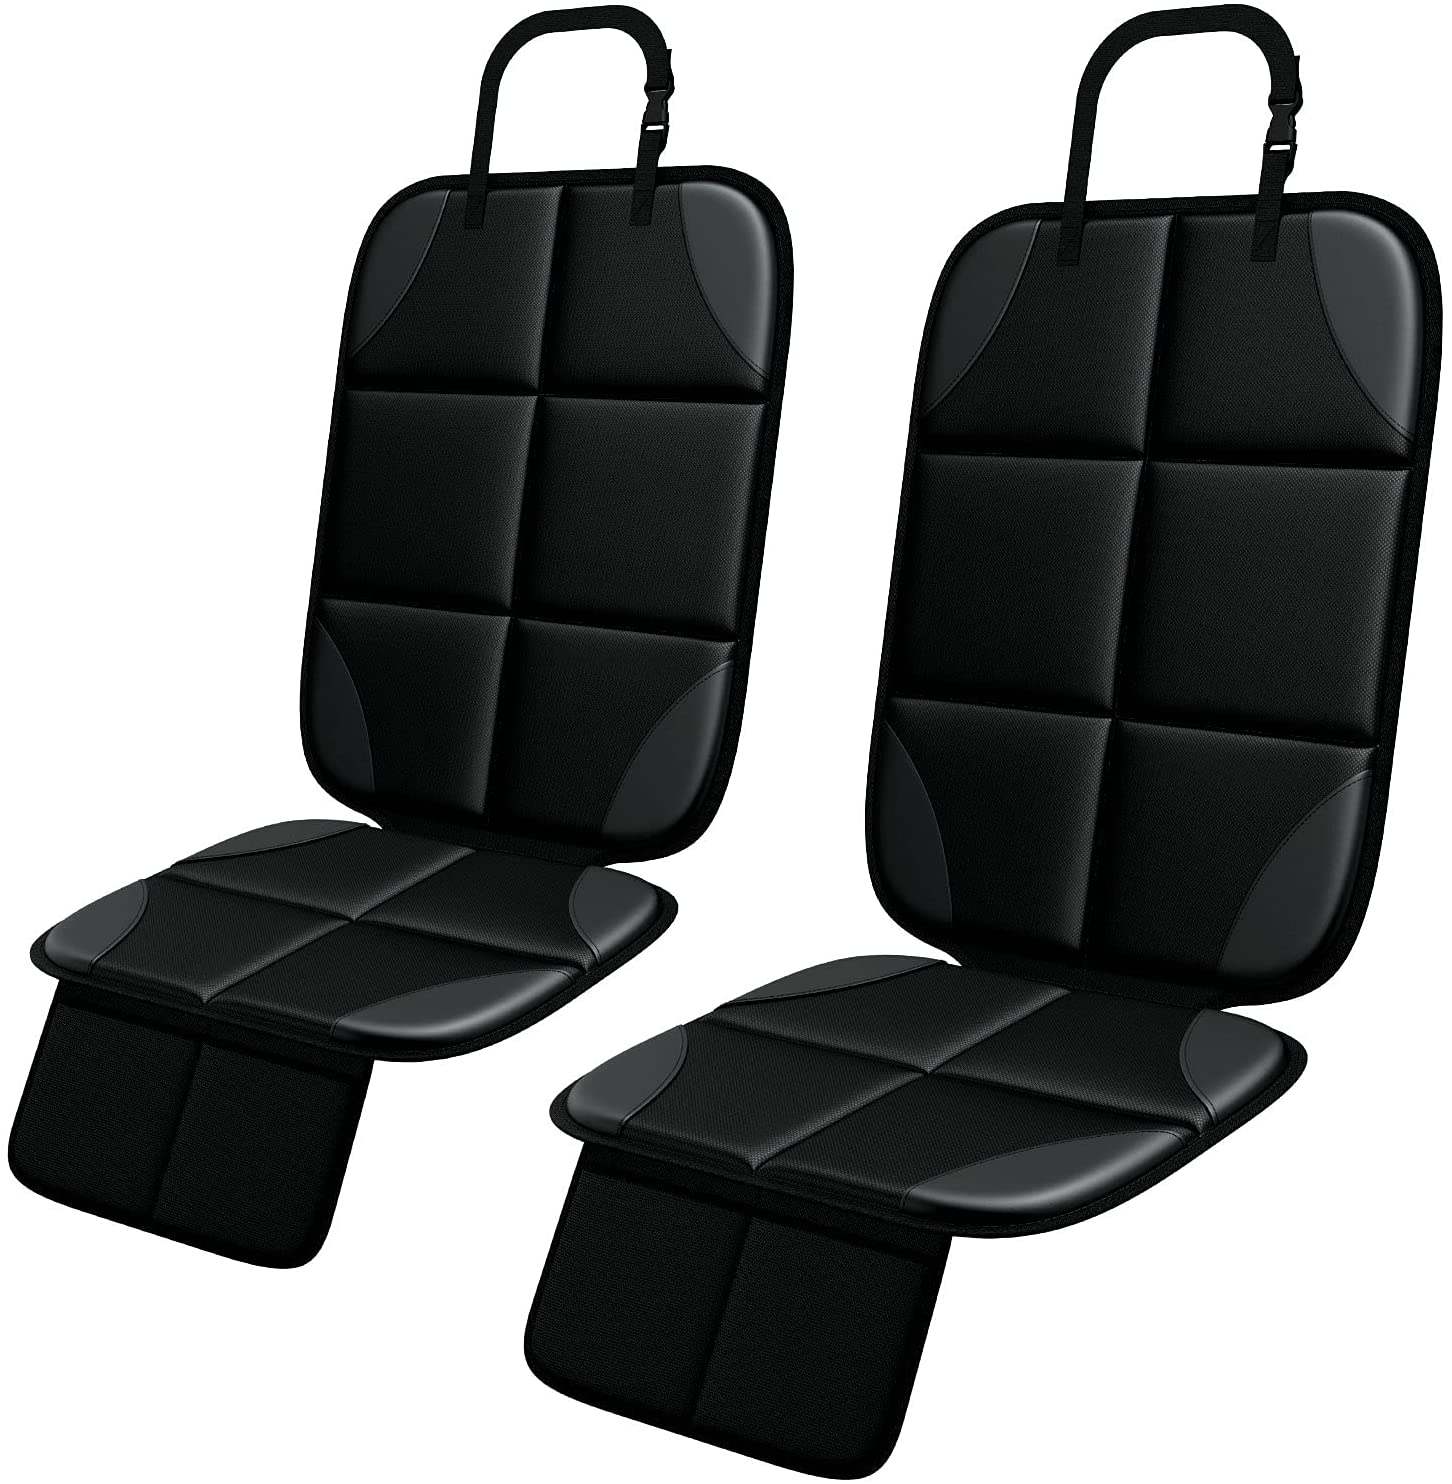 Car Seat Protector, MHO+All 2 Pack Auto Car Seat Protectors for Child Baby Car Seats - Large CarSeat Sit Savers Mat with Waterproof 600D Fabric & 2 Storage Pockets, Crash Test Approved